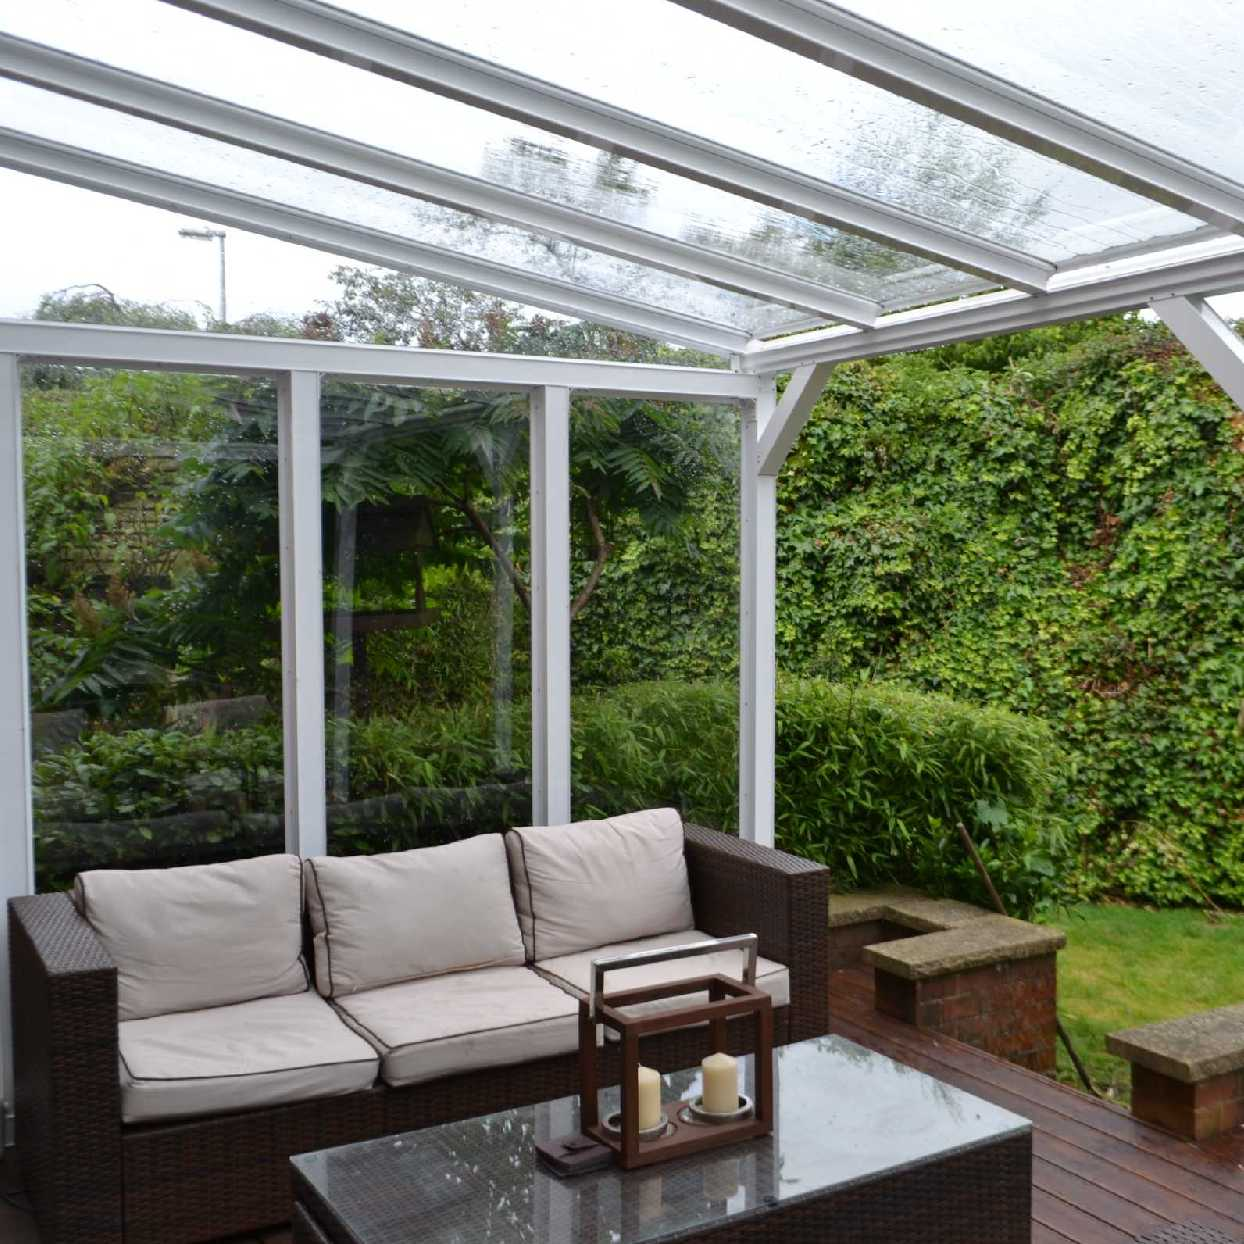 Great selection of Omega Smart White Lean-To Canopy with 16mm Polycarbonate Glazing - 6.0m (W) x 2.0m (P), (3) Supporting Posts